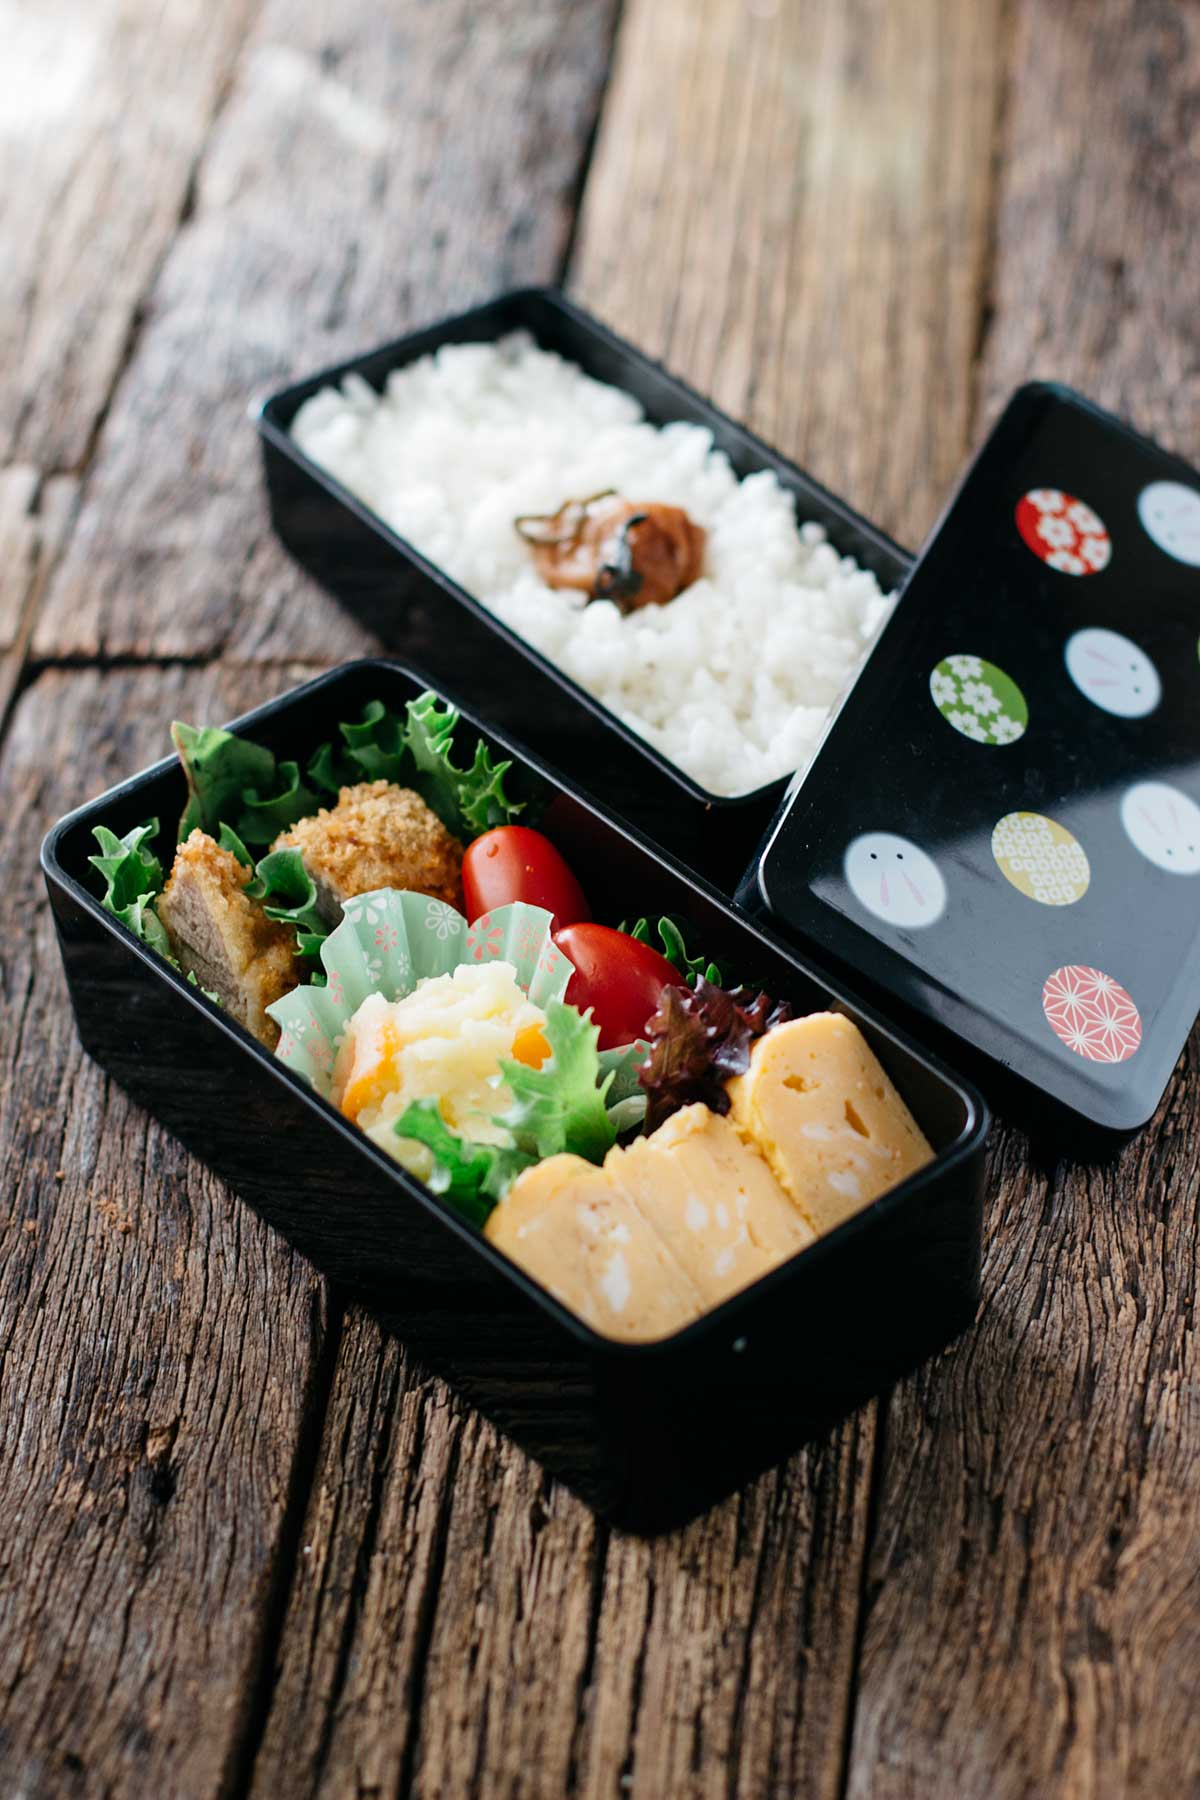 Simple bento chopstick chronicles but these can often look quite difficult and professional when really bento is very easy to make making a simple plain japanese forumfinder Gallery